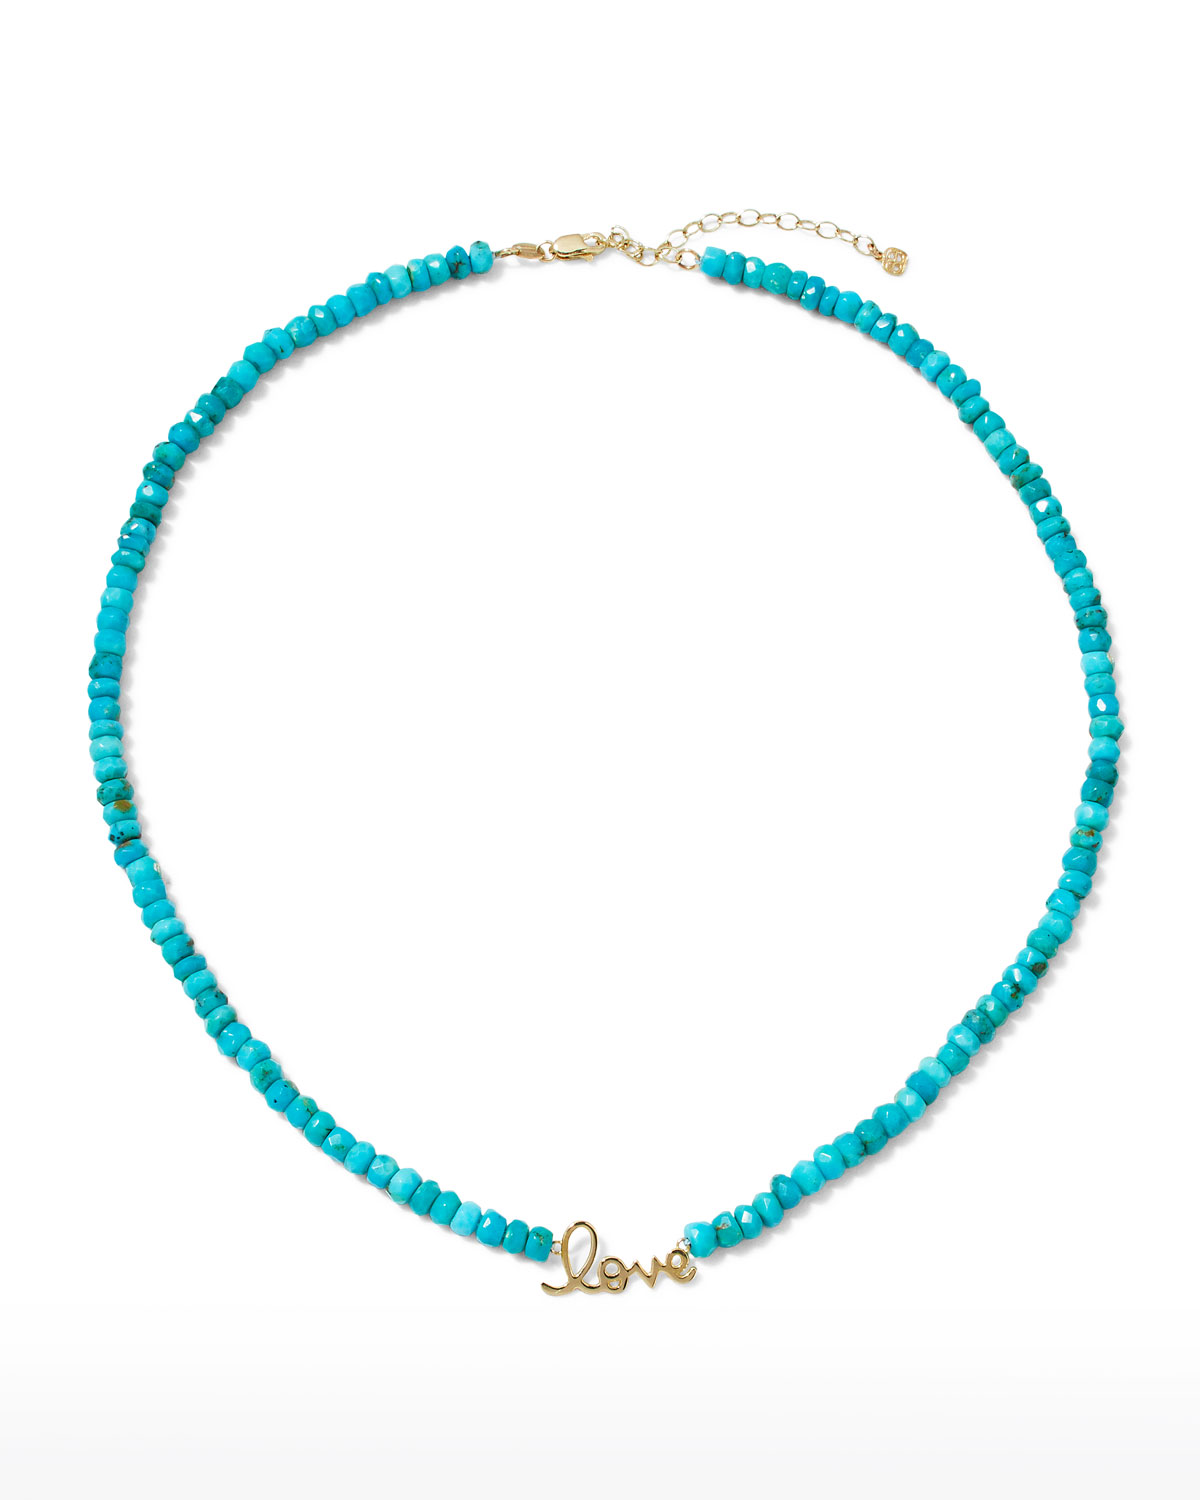 Sydney Evan PURE LOVE 14K YELLOW GOLD TURQUOISE BEADED NECKLACE